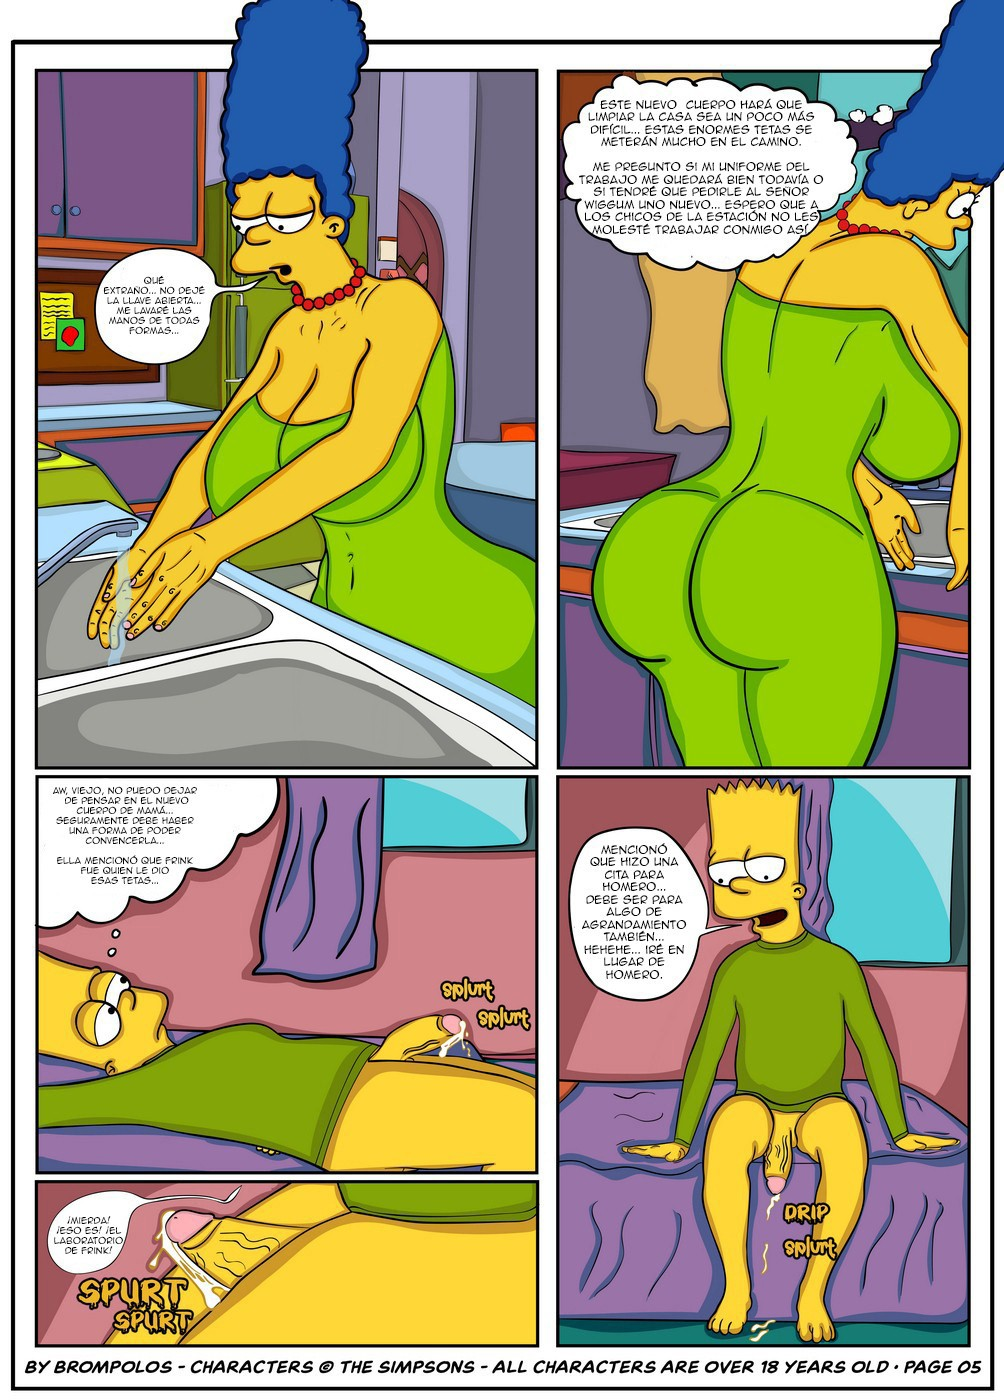 The-Simpsons-are-The-Sexenteins-7.jpg